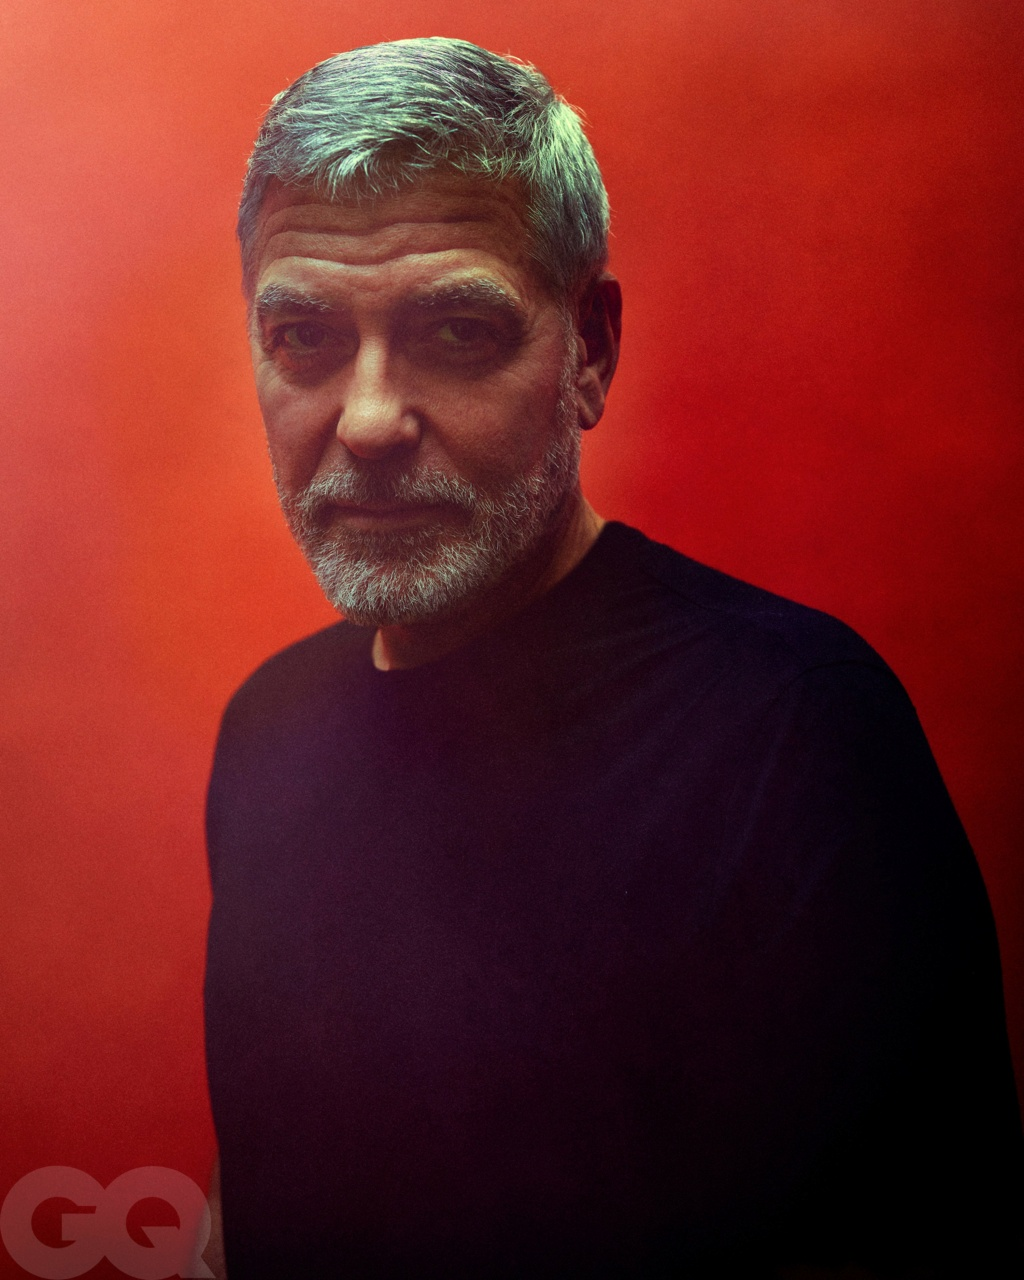 George Clooney interview with GQ magazine.  Nov 2020 Gq_mag16